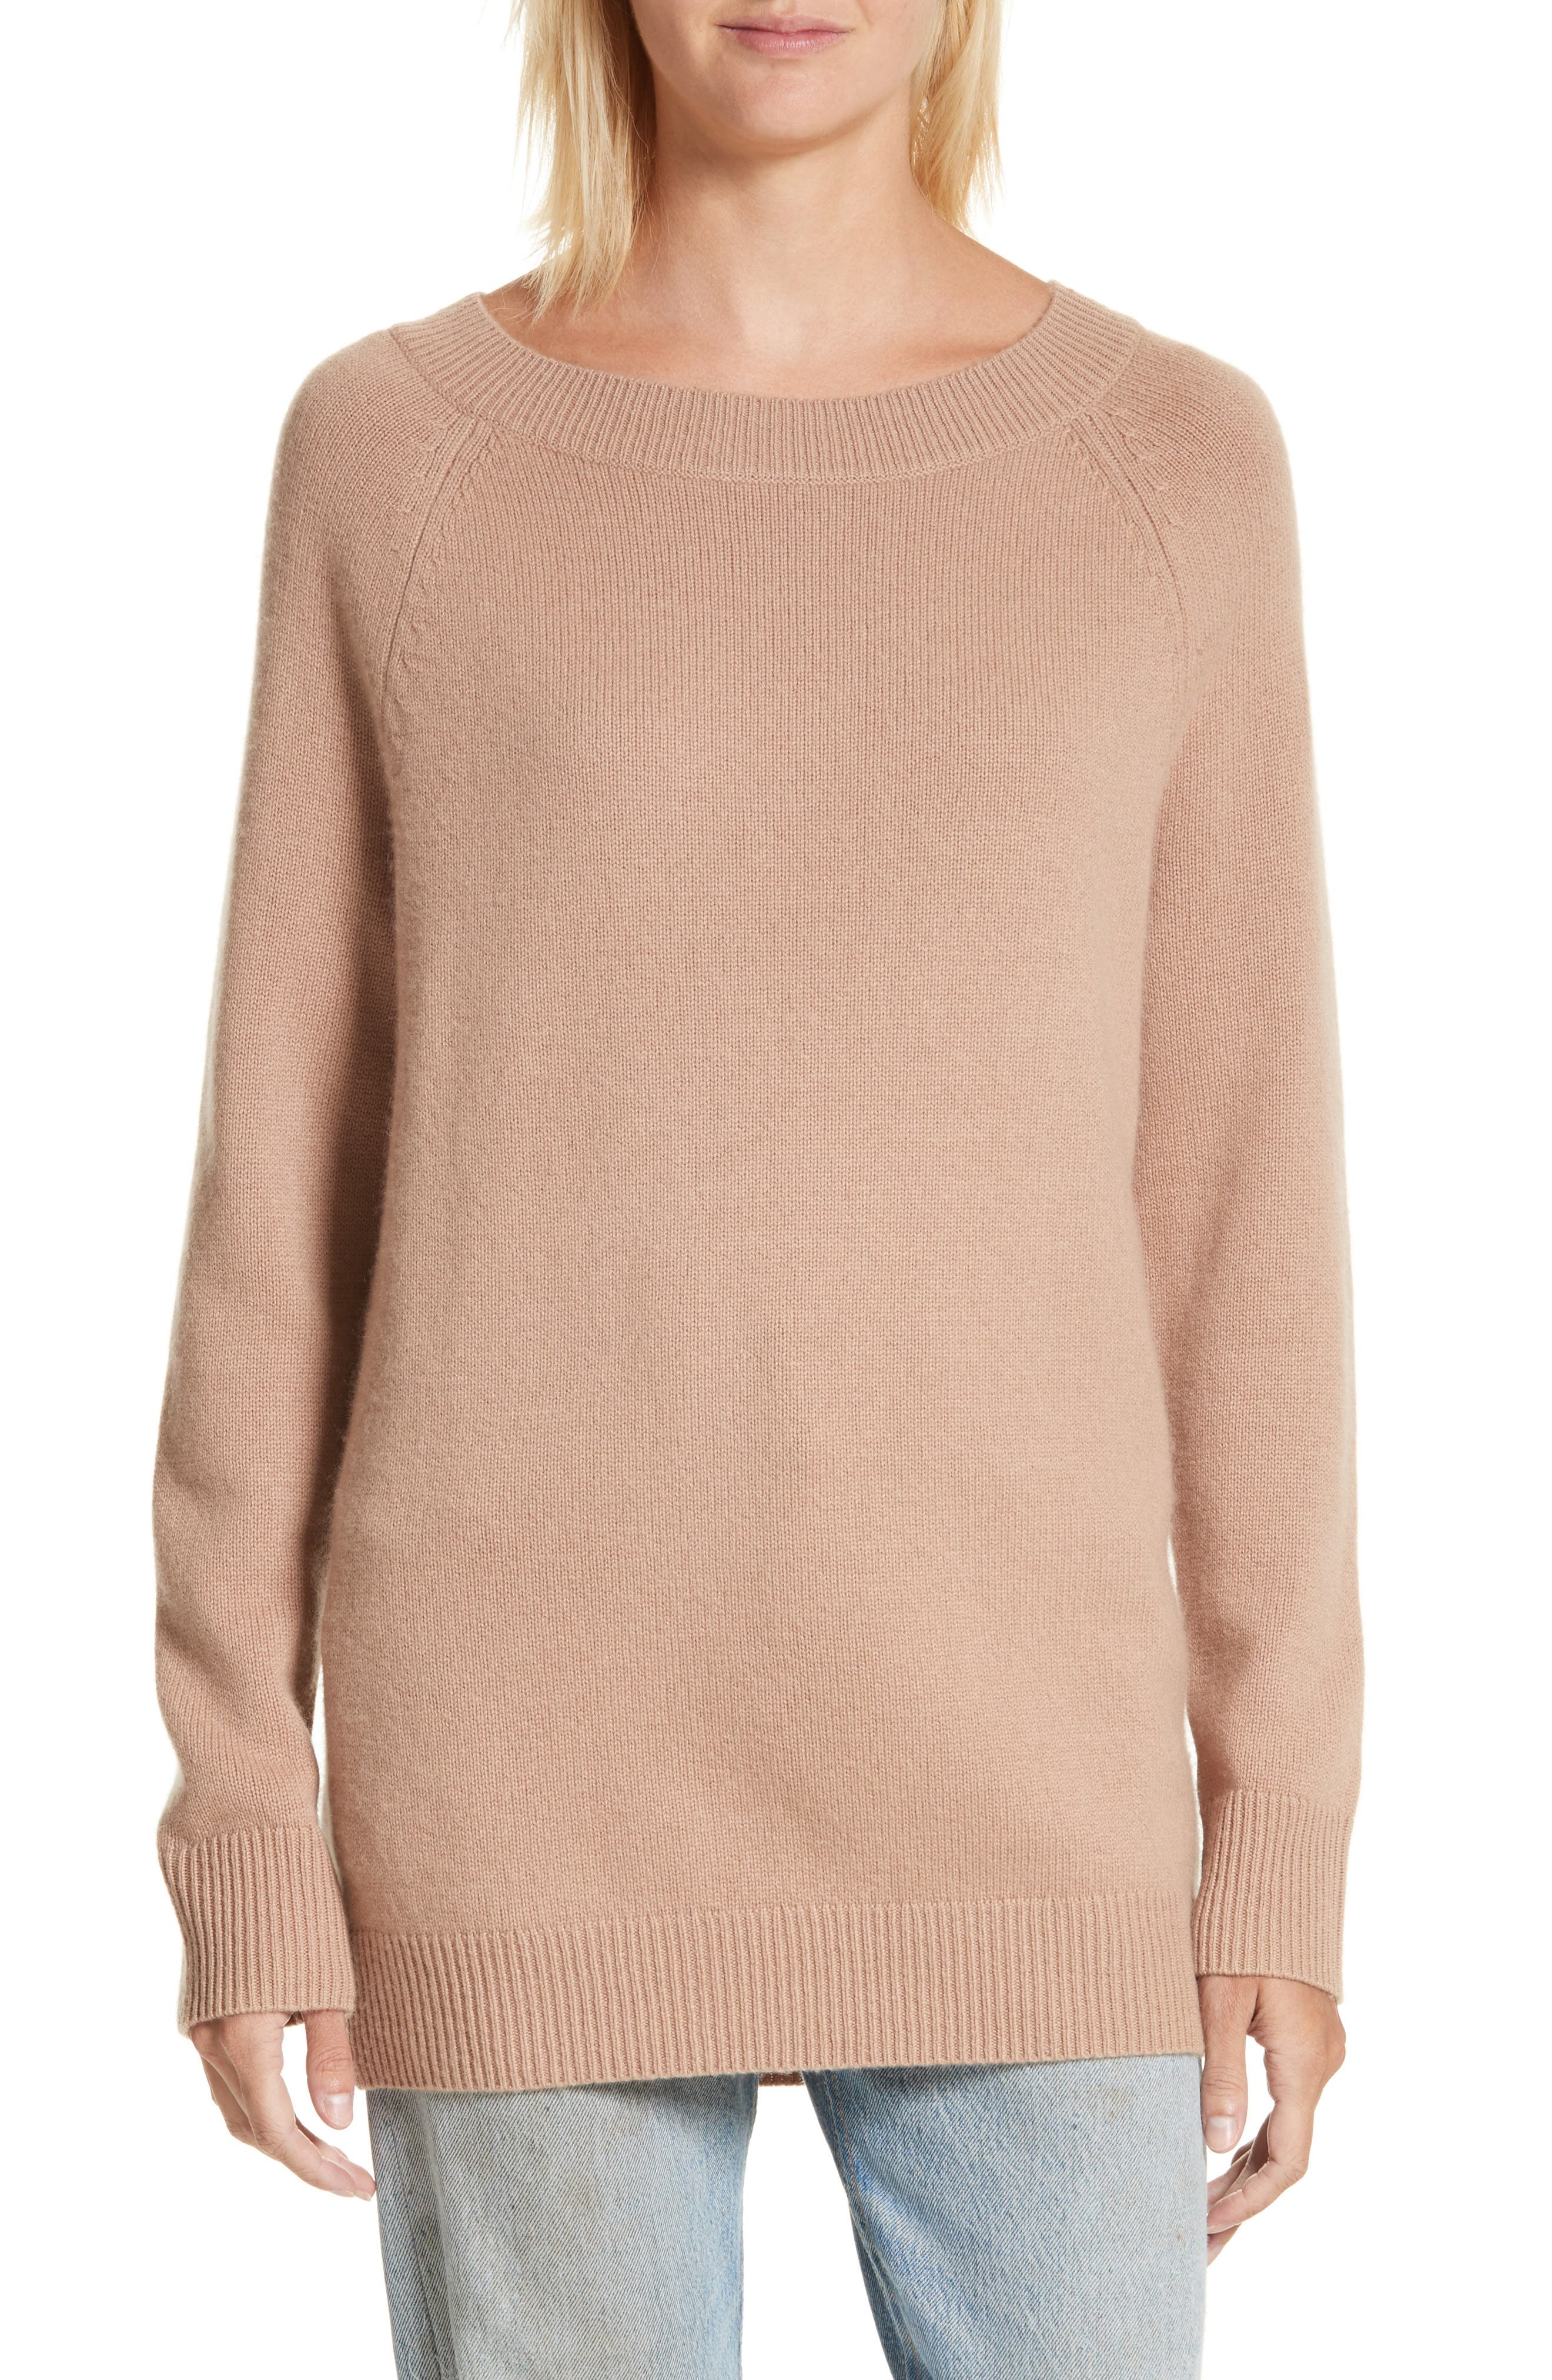 Cody Wool & Cashmere Boatneck Sweater,                             Main thumbnail 1, color,                             200